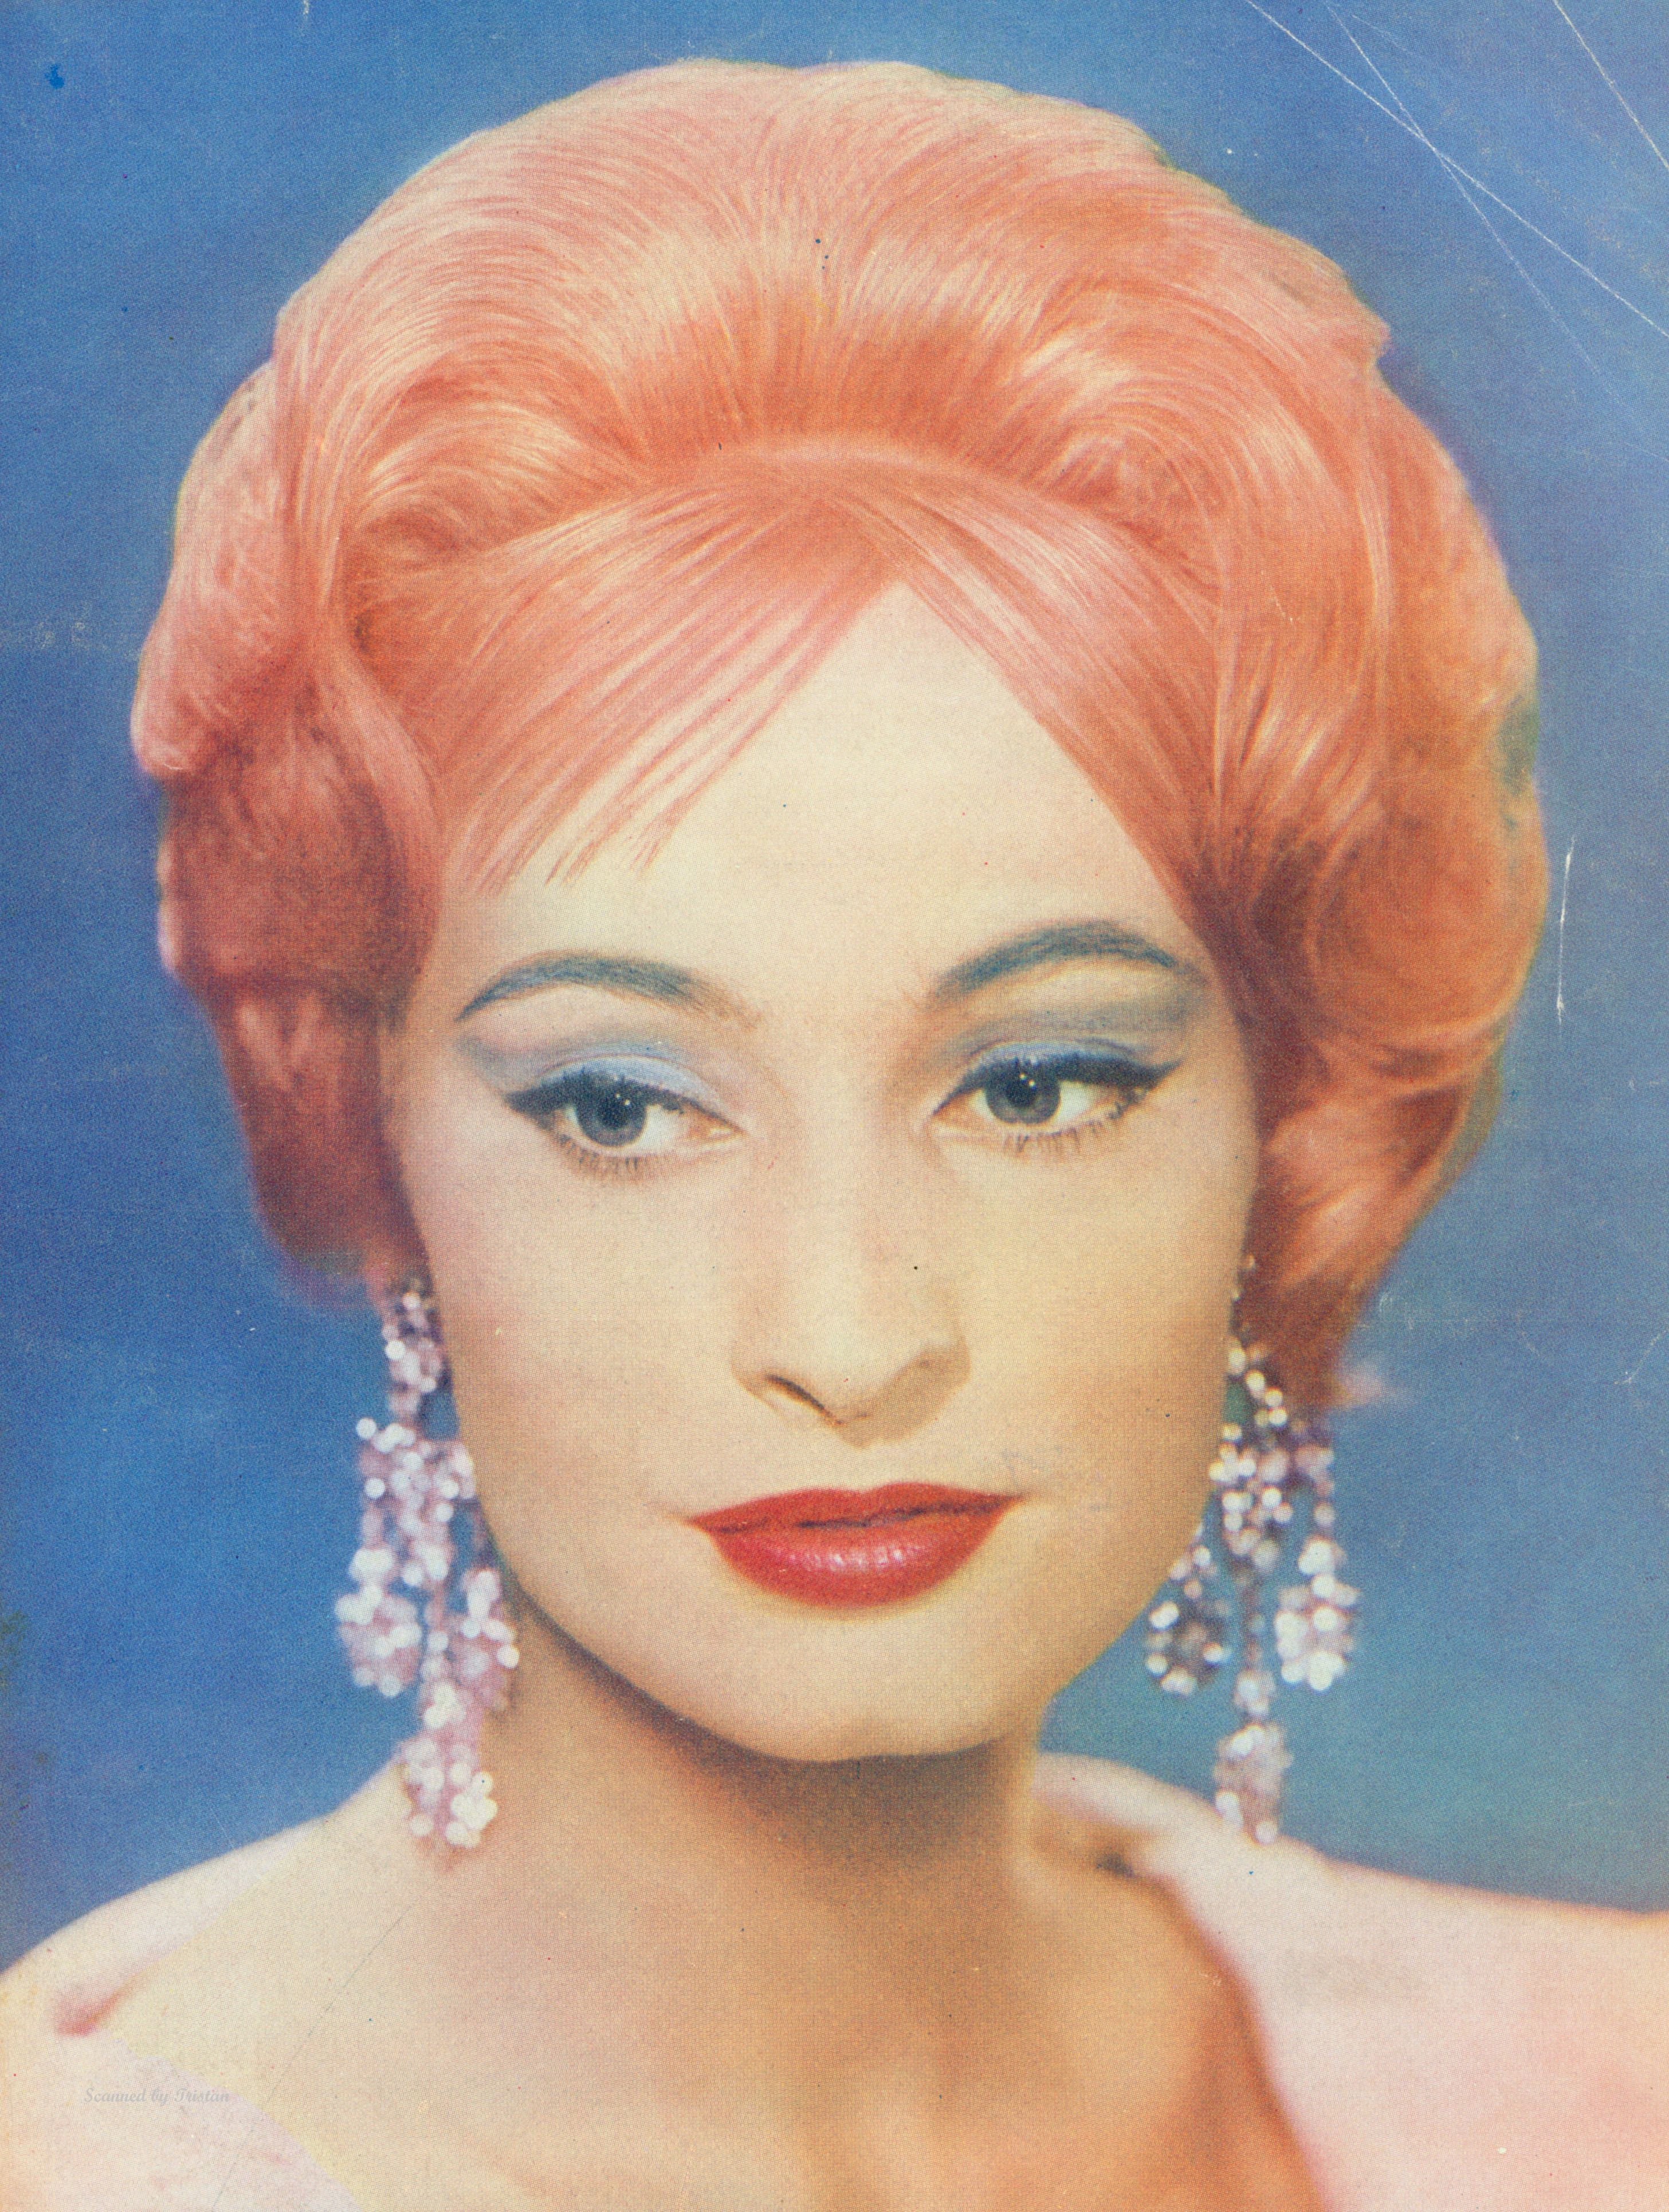 Pin by Tristan on 1960s Women's Hairstyes and Hairstyling ...